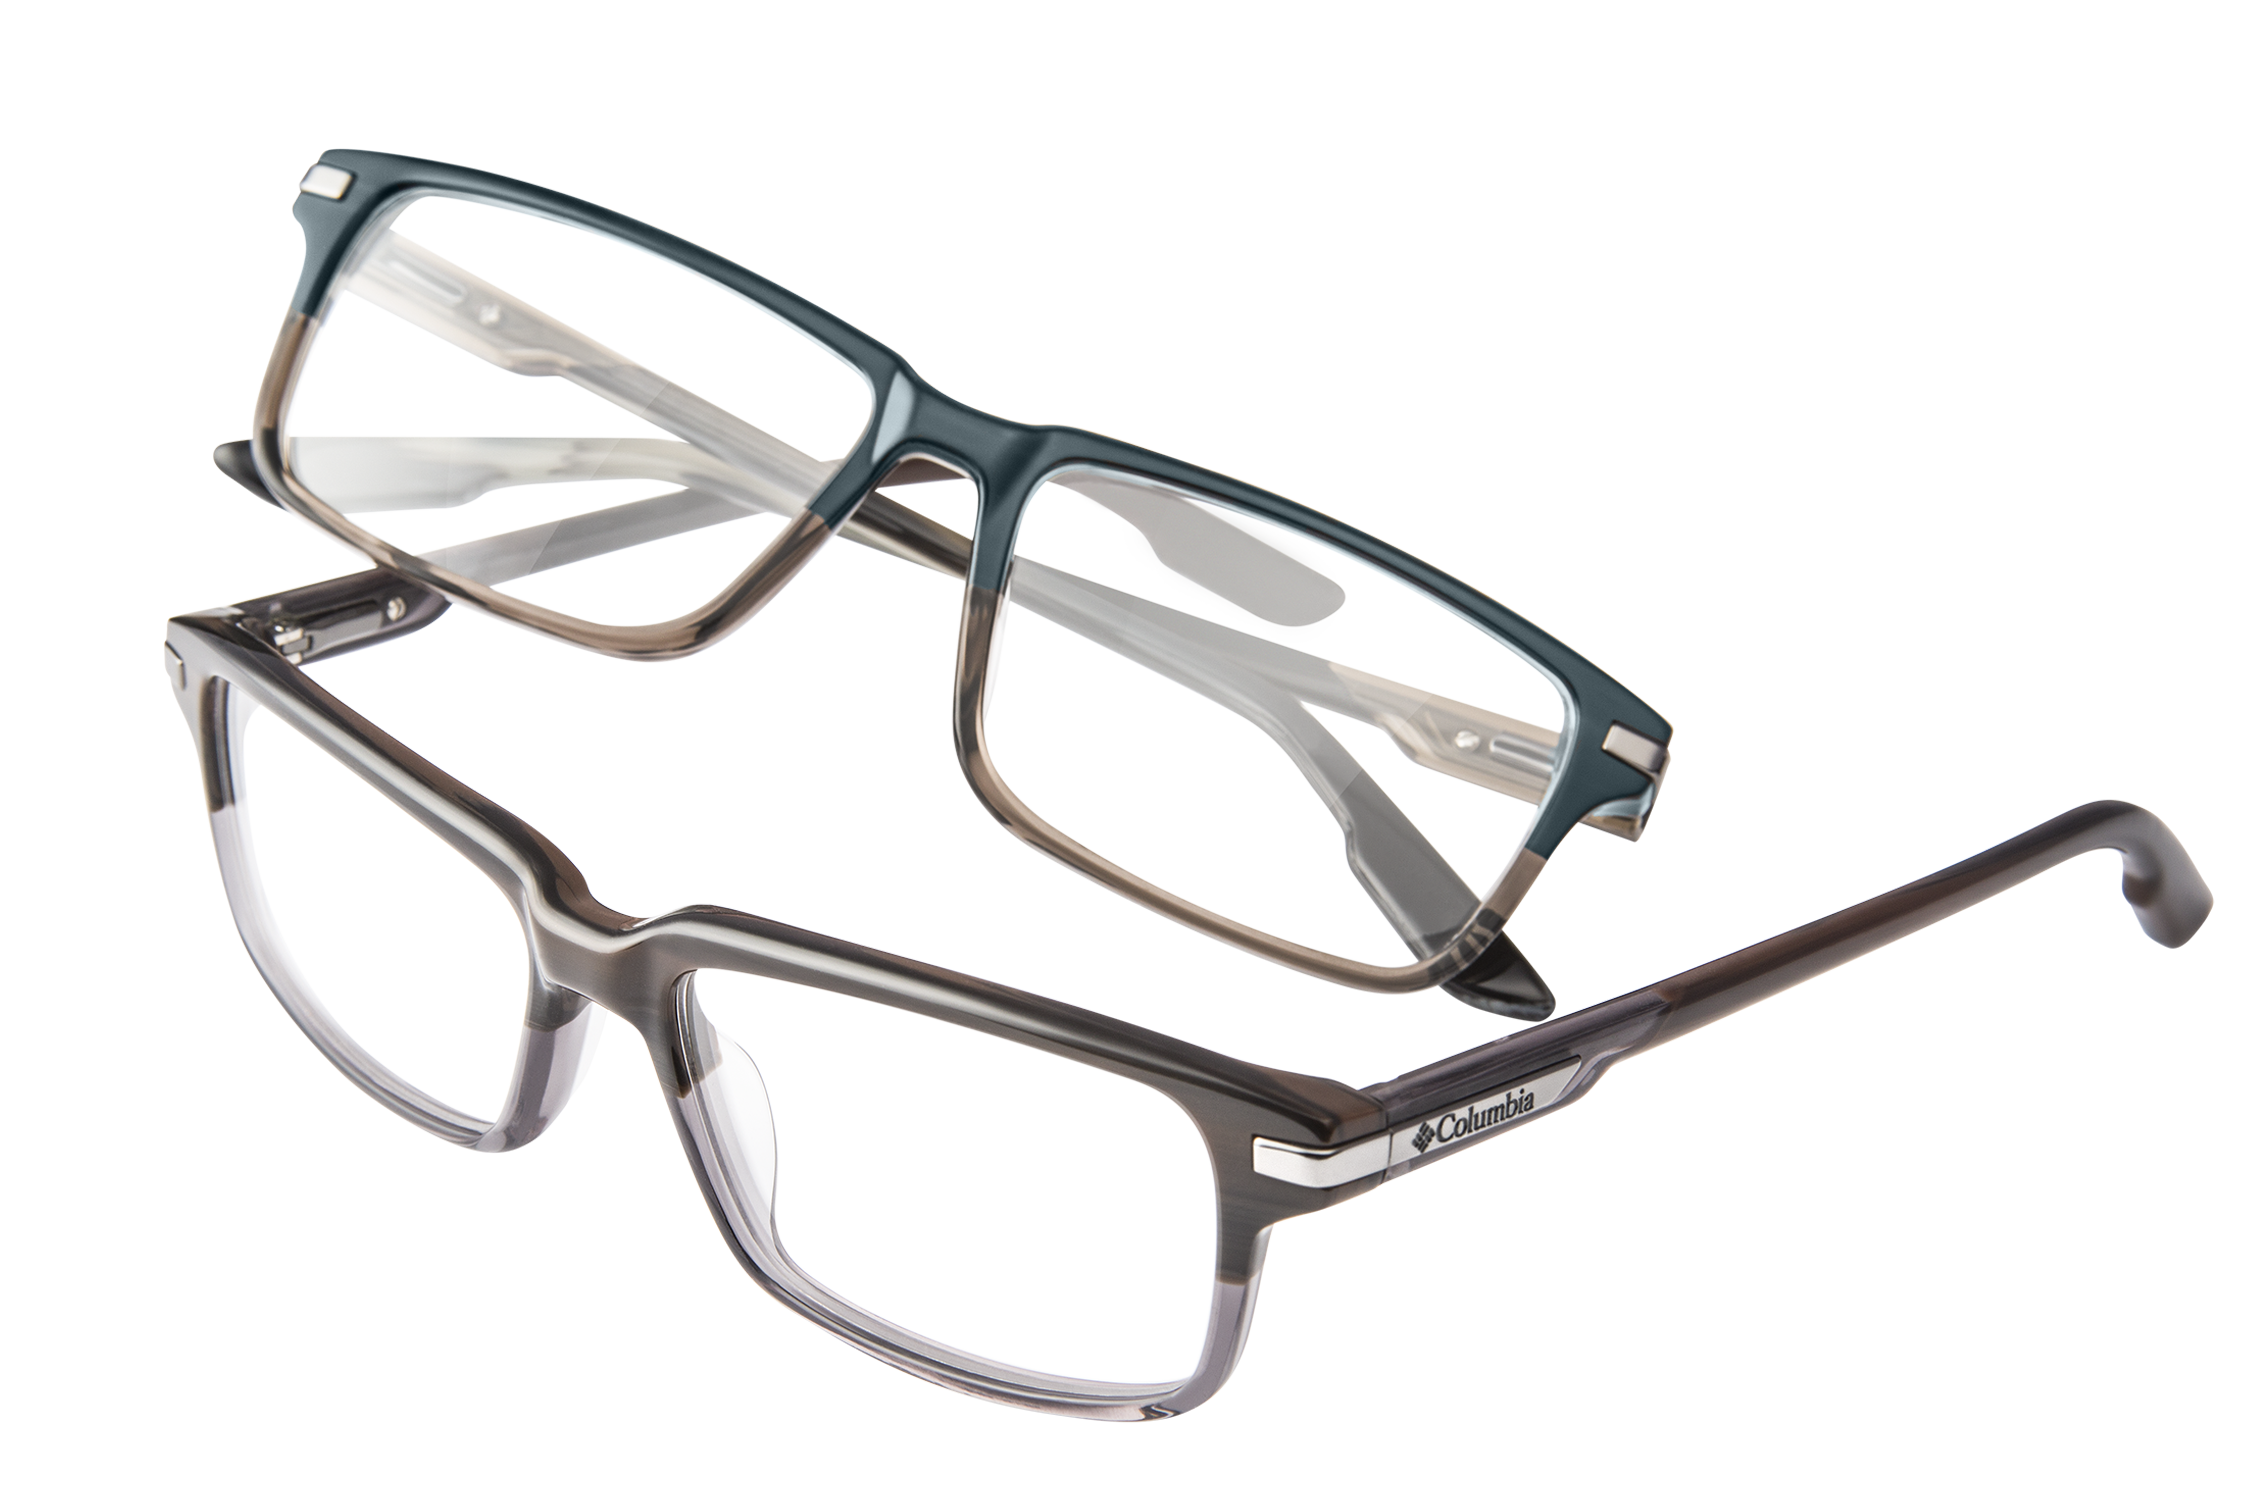 Clip sunglasses prescription glass. Browse marchon eyeglass frames